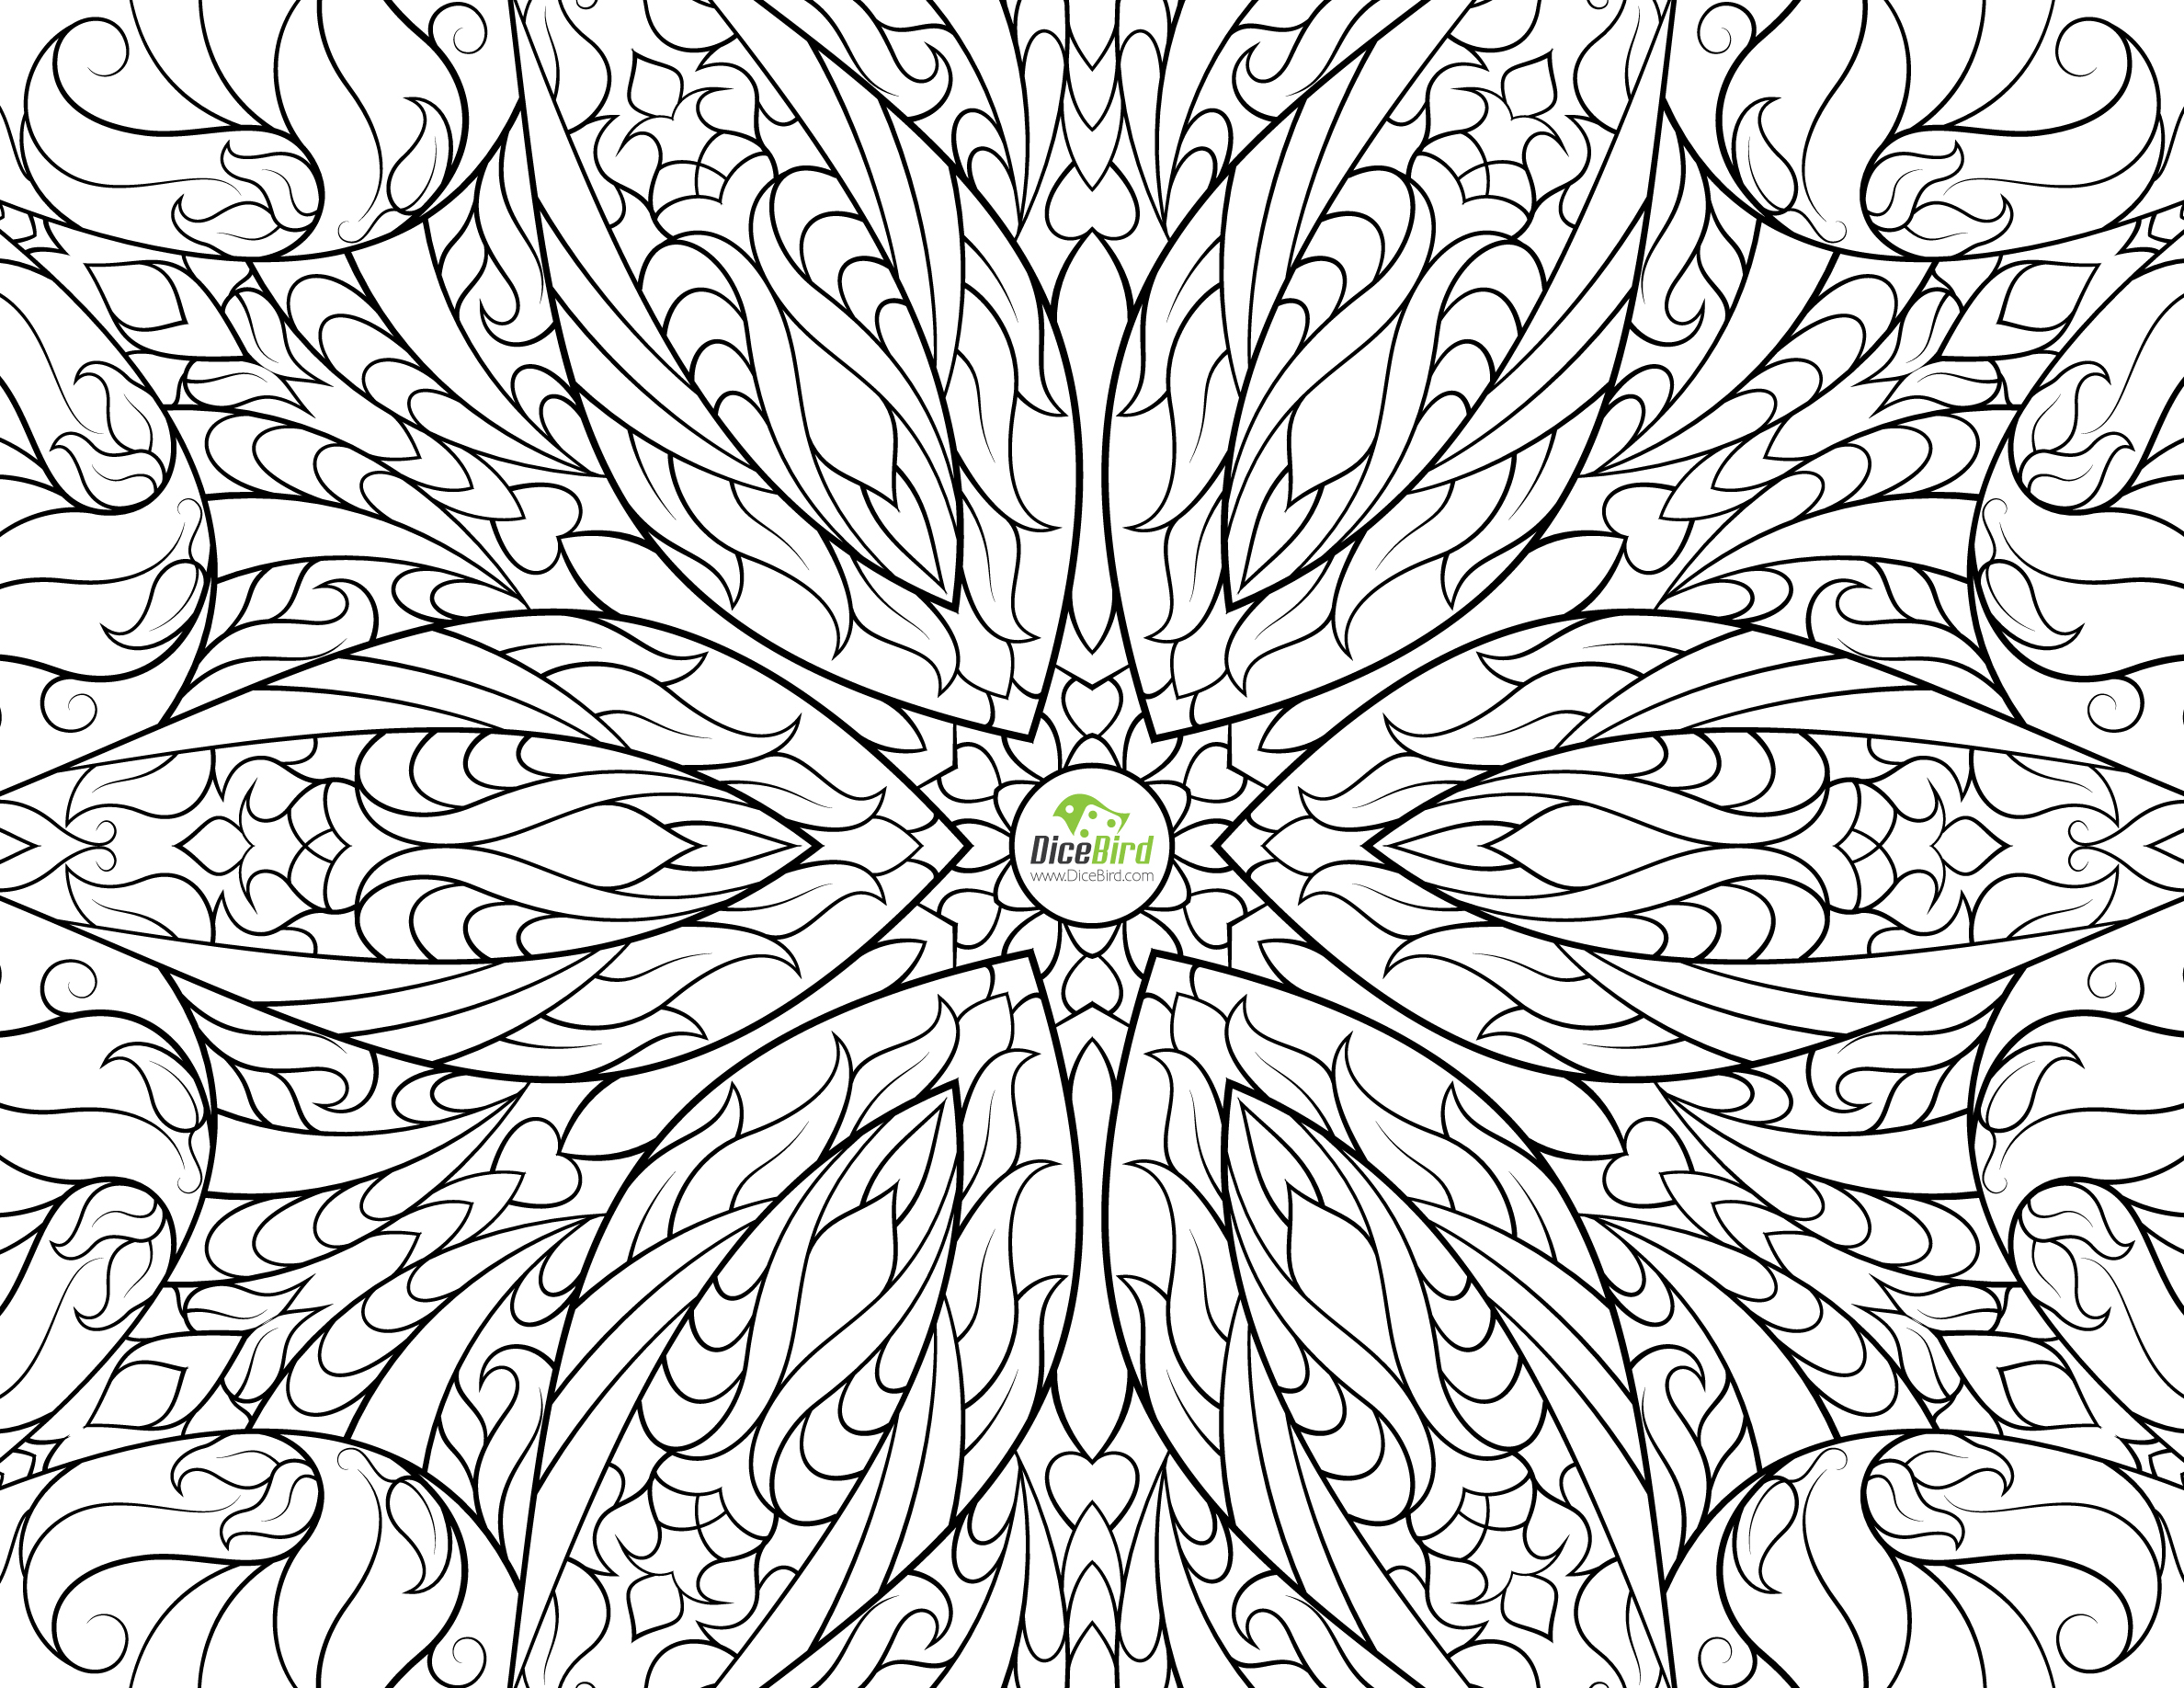 difficult coloring pages for adults very difficult coloring pages for adults at getdrawings adults pages coloring for difficult